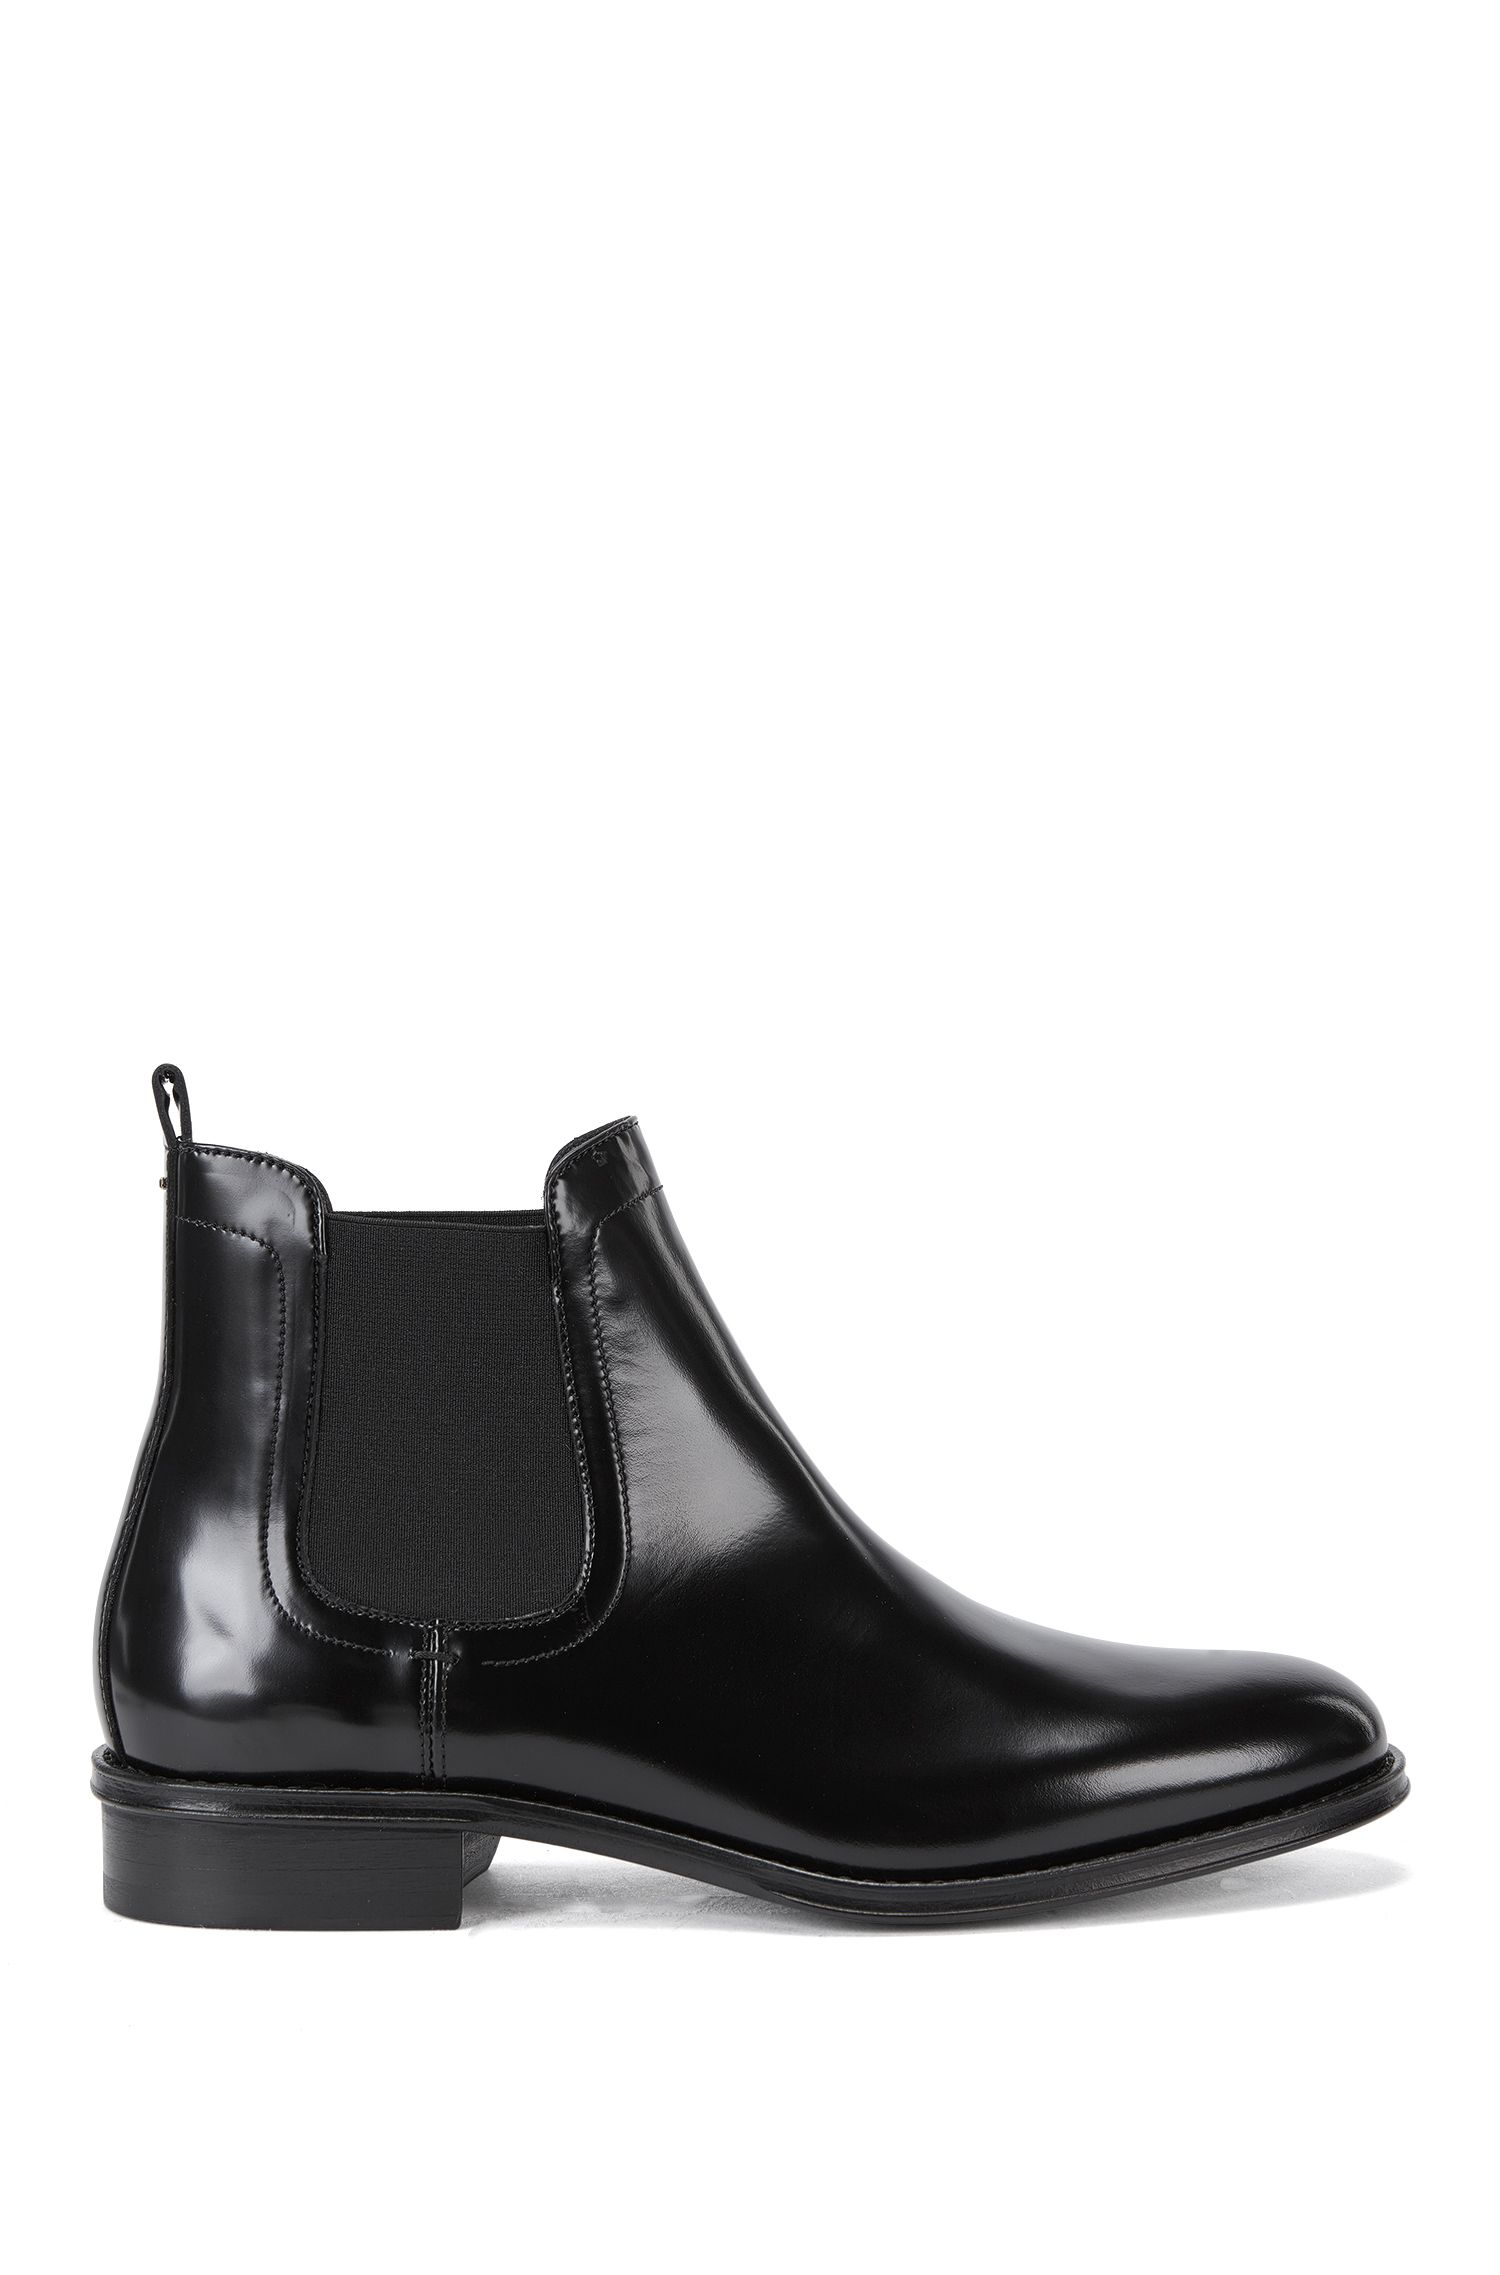 Contemporary Chelsea boots in Italian leather